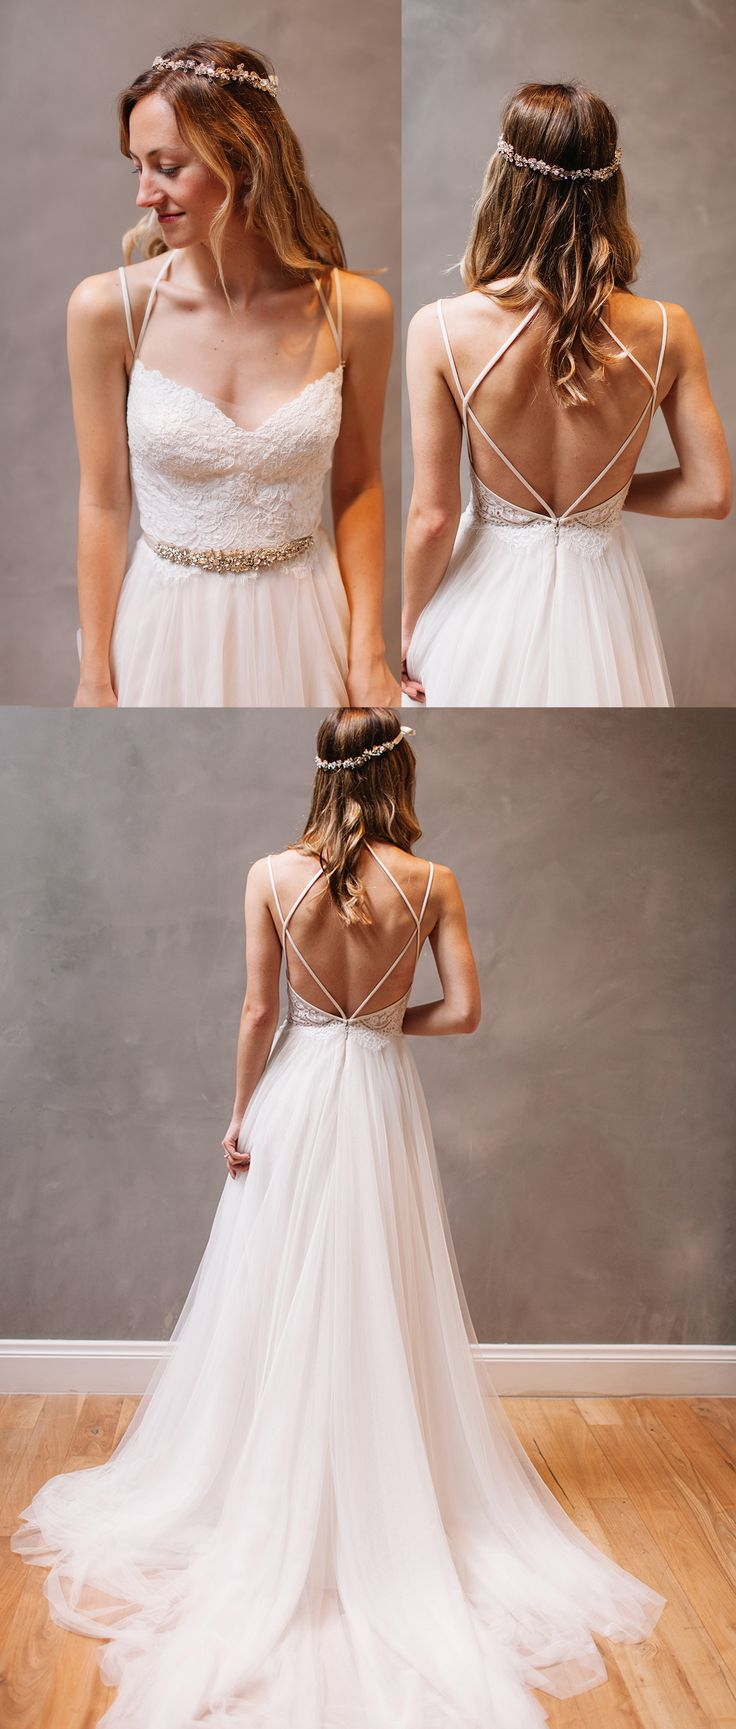 lace long wedding dresses, wedding dresses 2017, backless wedding dresses for bridal, bridal gowns for party